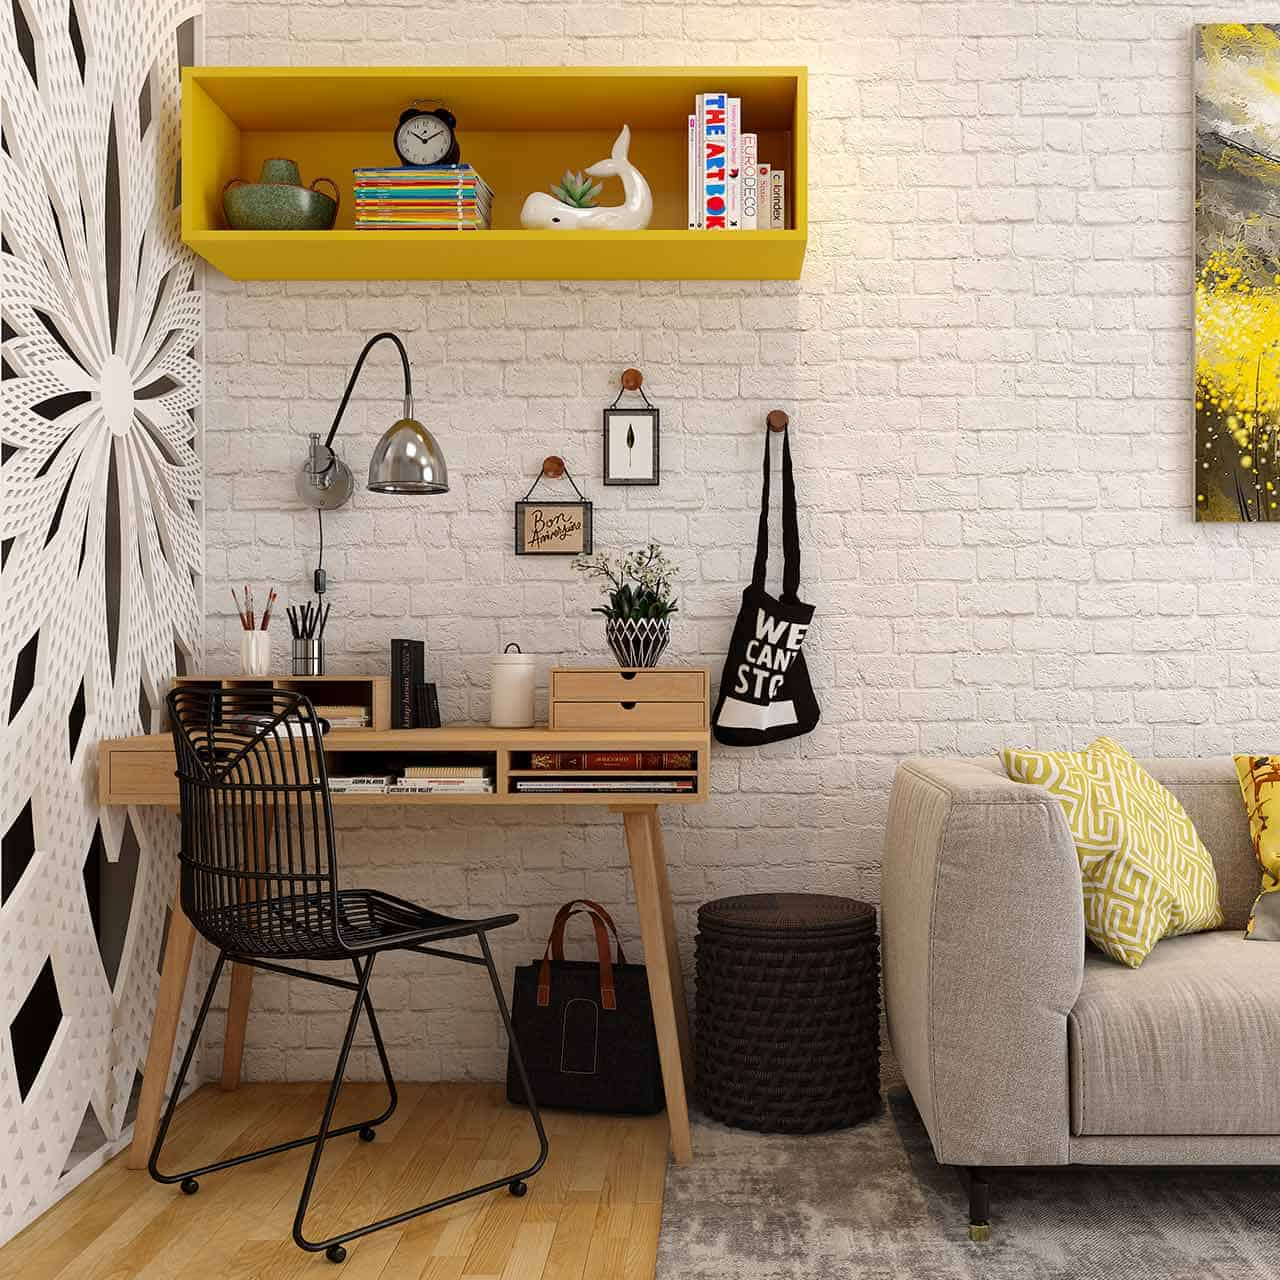 modern study room ideas where many desks are designed with inbuilt shelves and drawers in a way for study room interior design